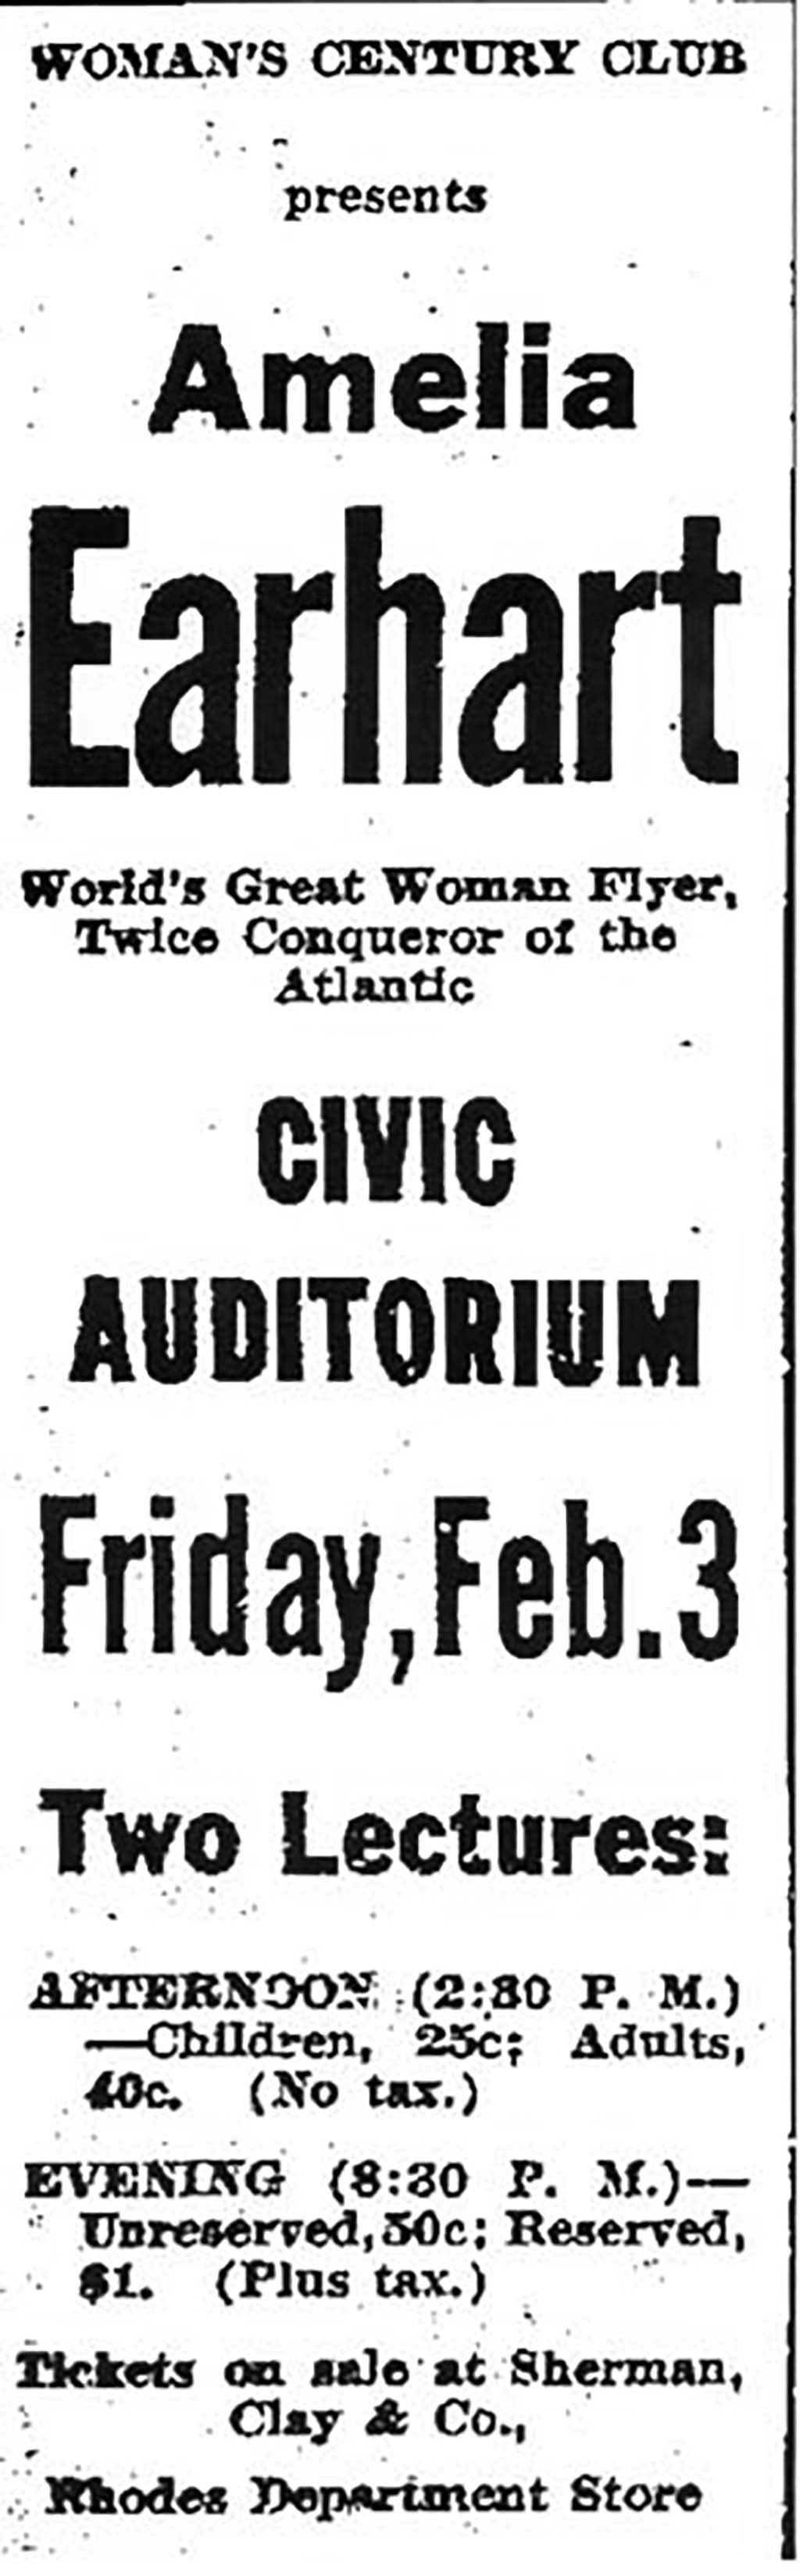 Amelia Earhart Speaks At Seattles Civic Auditorium Under  Advertisement For Womans Century Club Presentation Of Amelia Earhart  Seattle